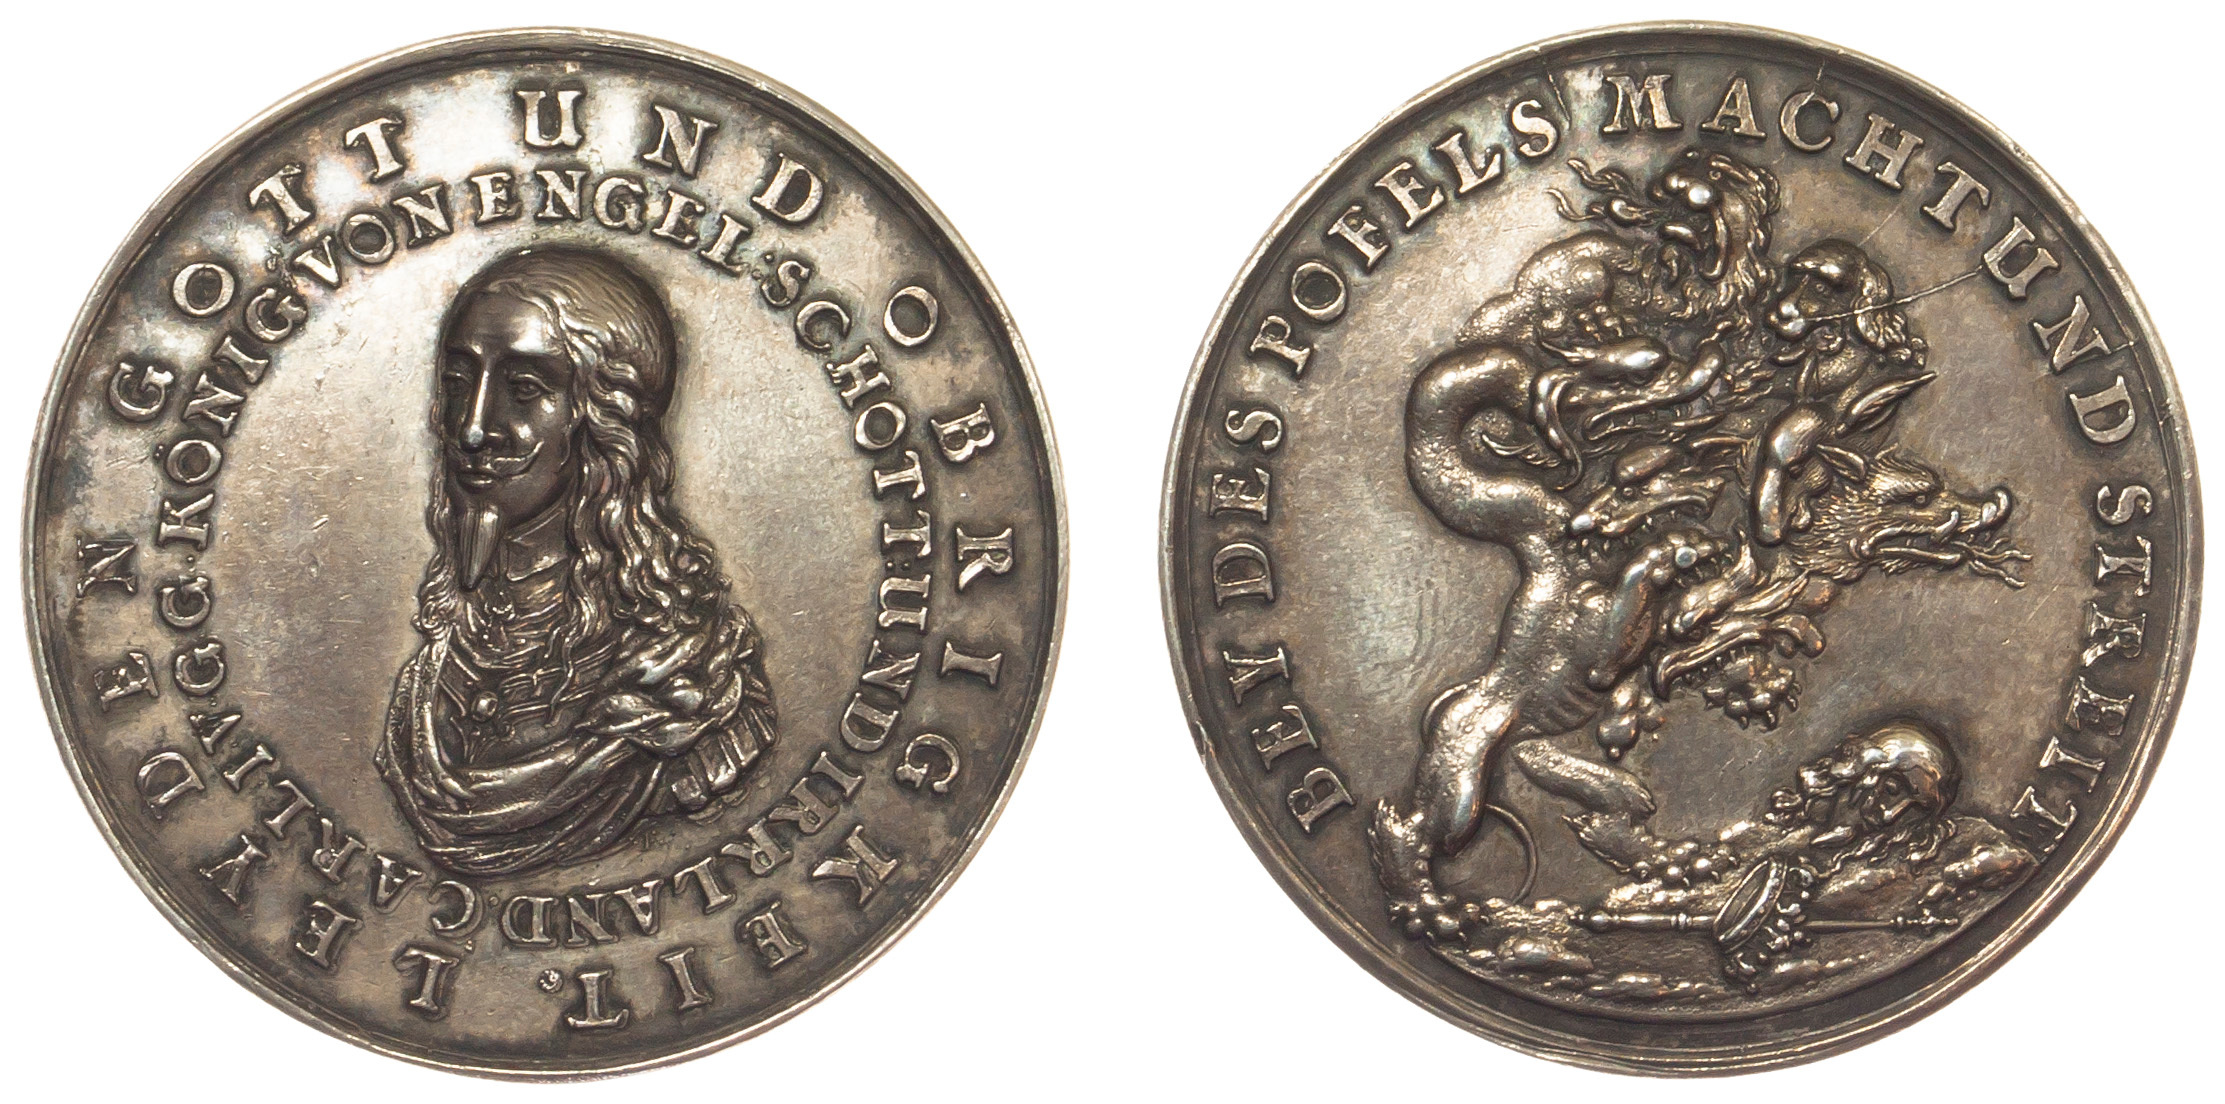 Charles I, Death and Memorial, Silver Medal, 1649